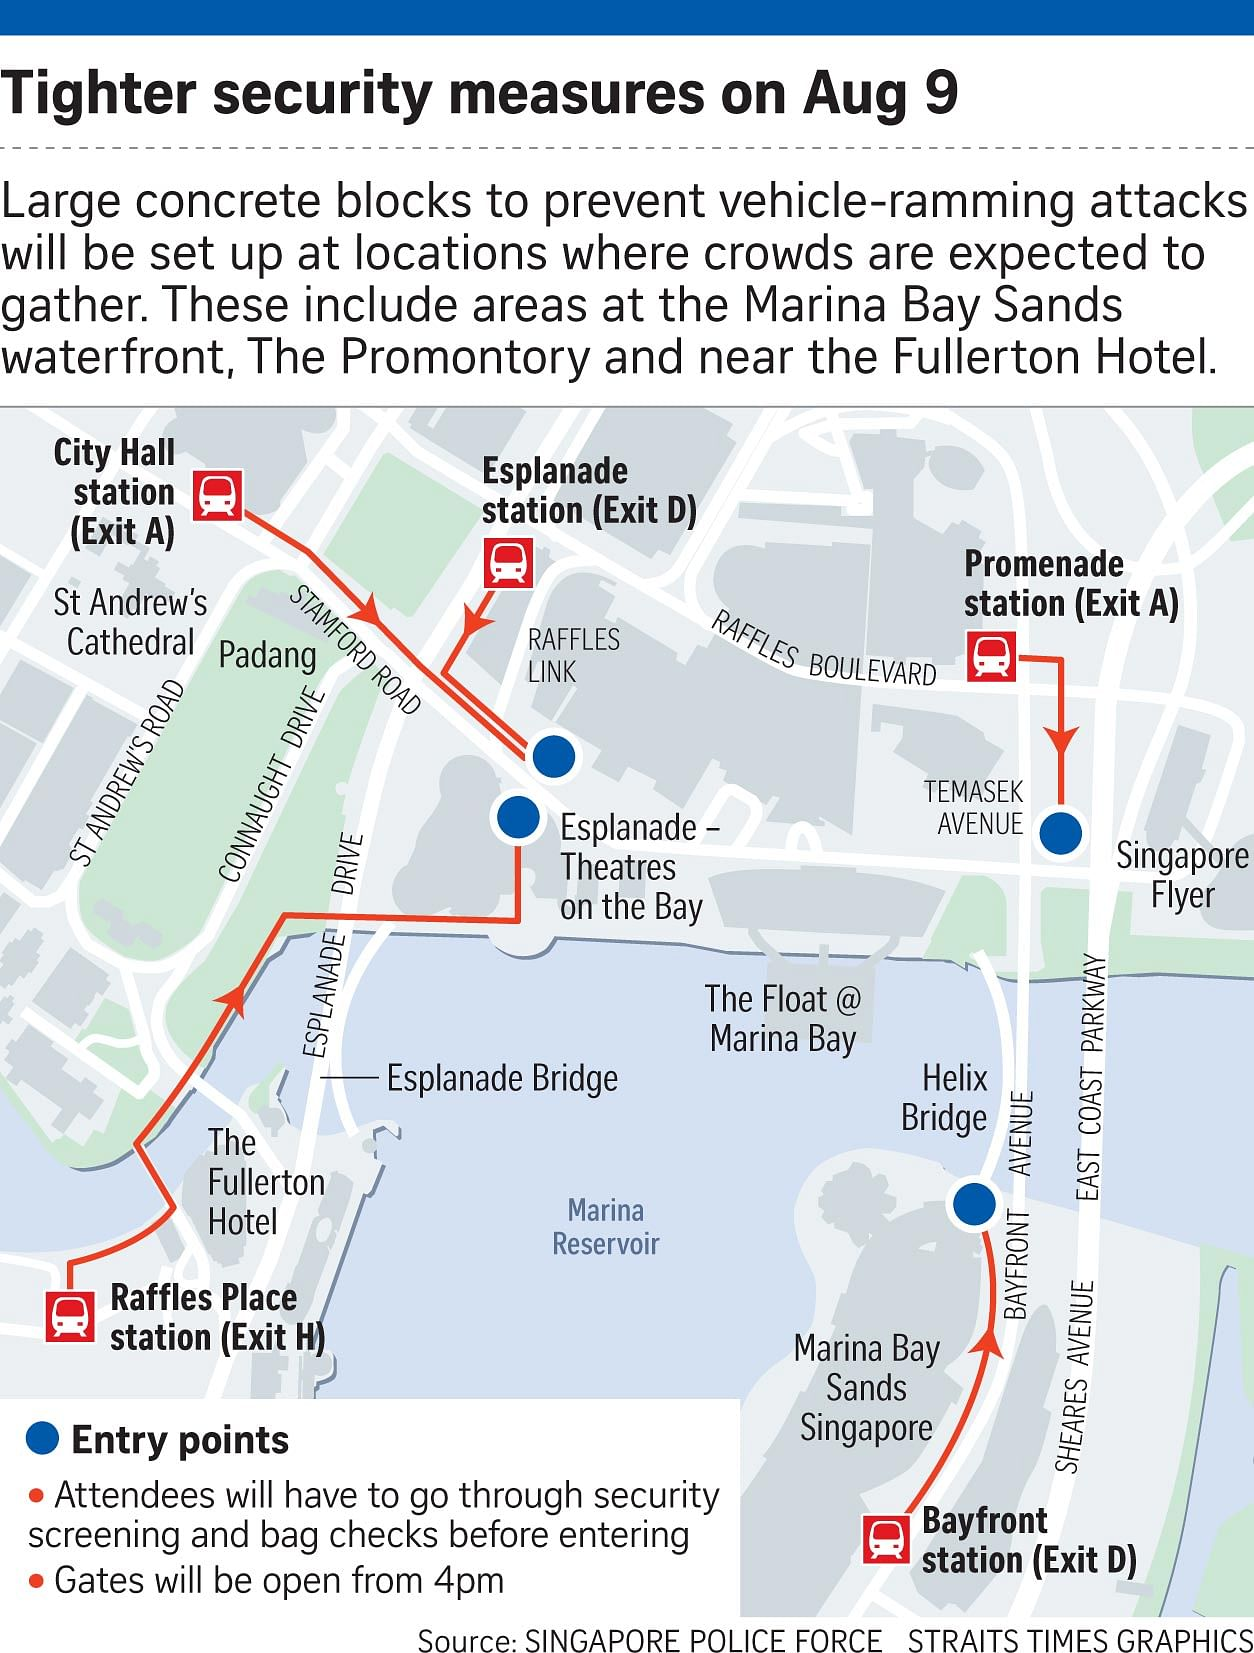 Security measures at NDP on Aug 9